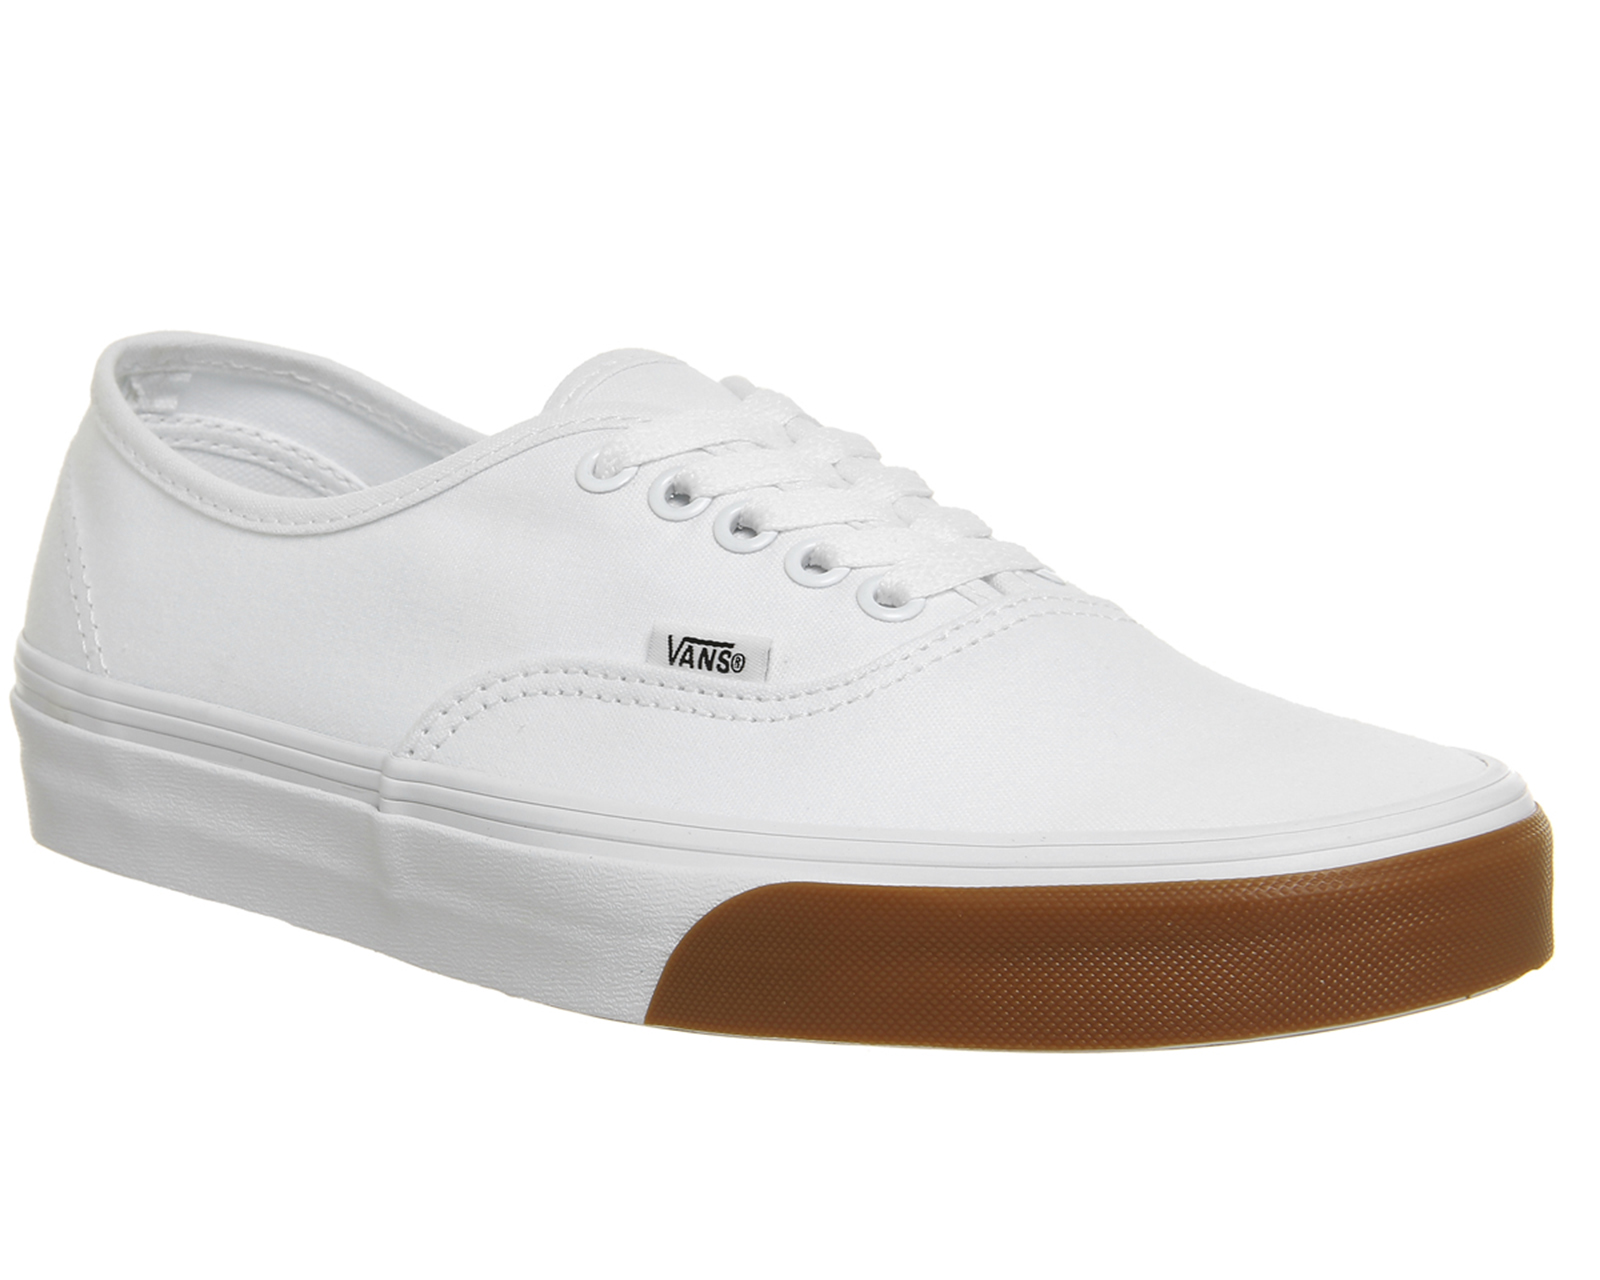 79fdb0ad66 Sentinel Thumbnail 1. Sentinel Vans Authentic Trainers True White Gum  Bumper Trainers Shoes